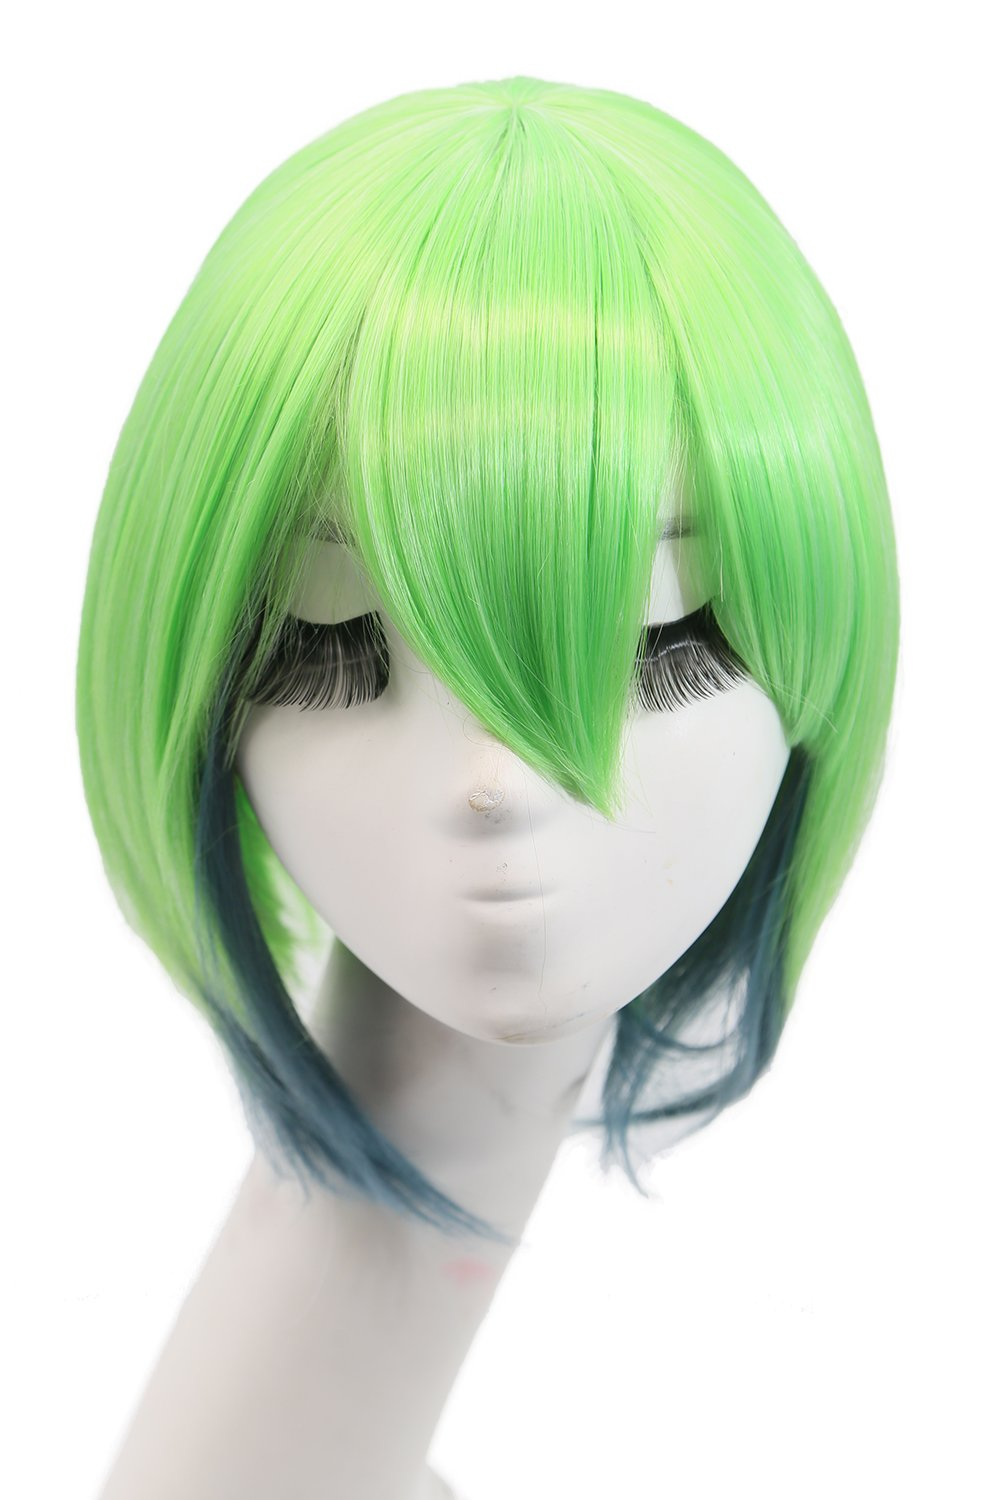 Mira Yurizaki Wig Dimension W Cosplay Costume Wig Hair Accessories for Halloween Party